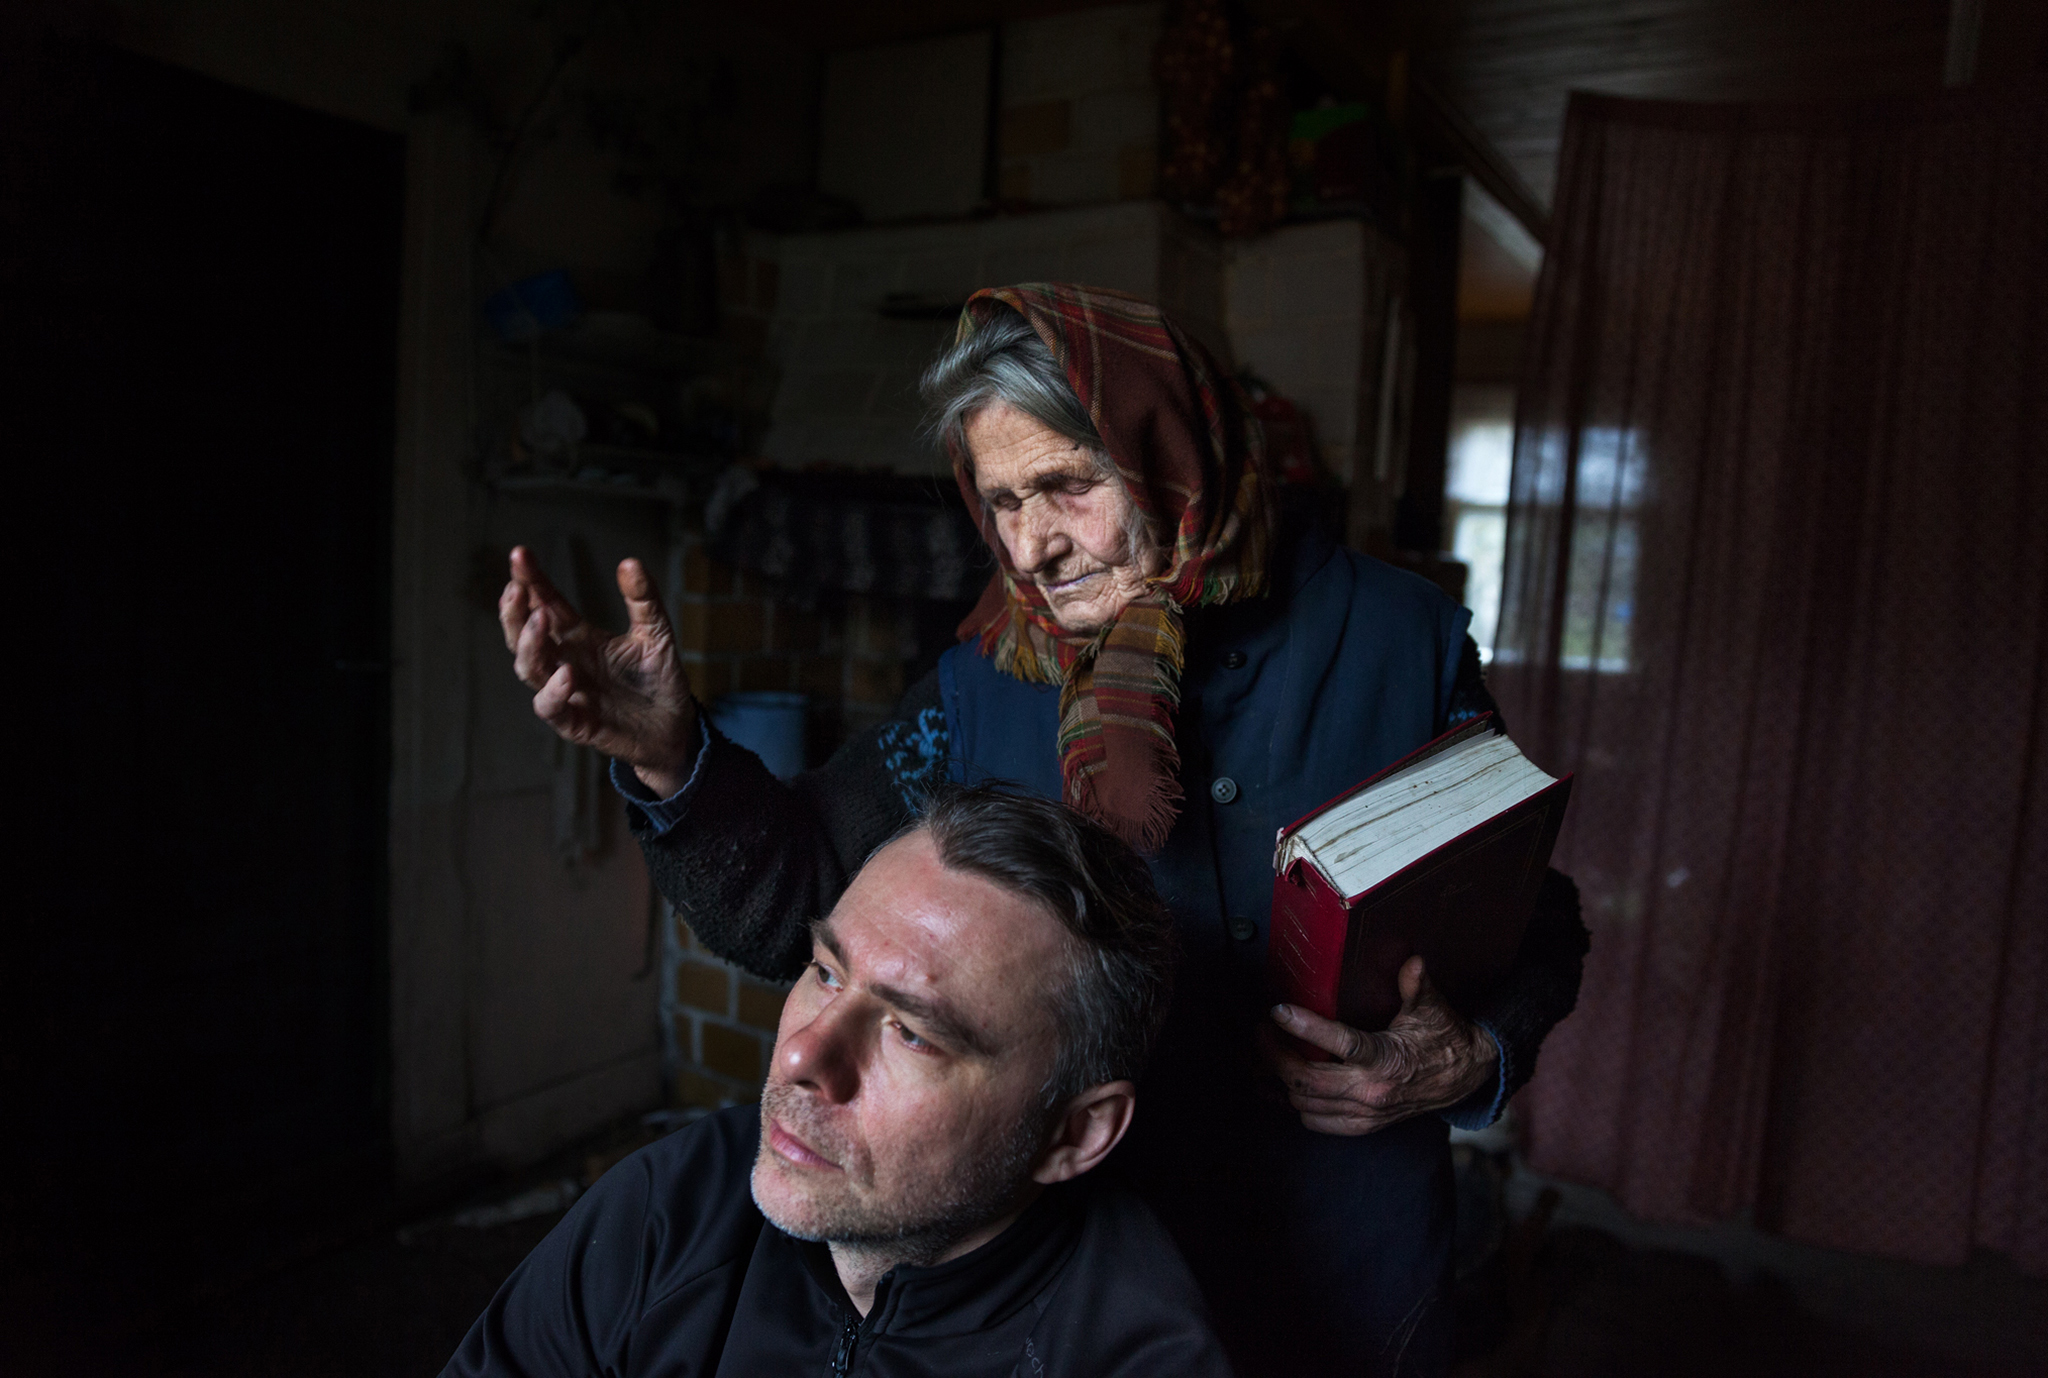 In Rutka, Poland, Anna Bondaruk, 84, prays with Marek Włodzimirow, 38, who has come to her for spiritual healing. Bondaruk says she has a direct connection to Mary that allows her to heal people.